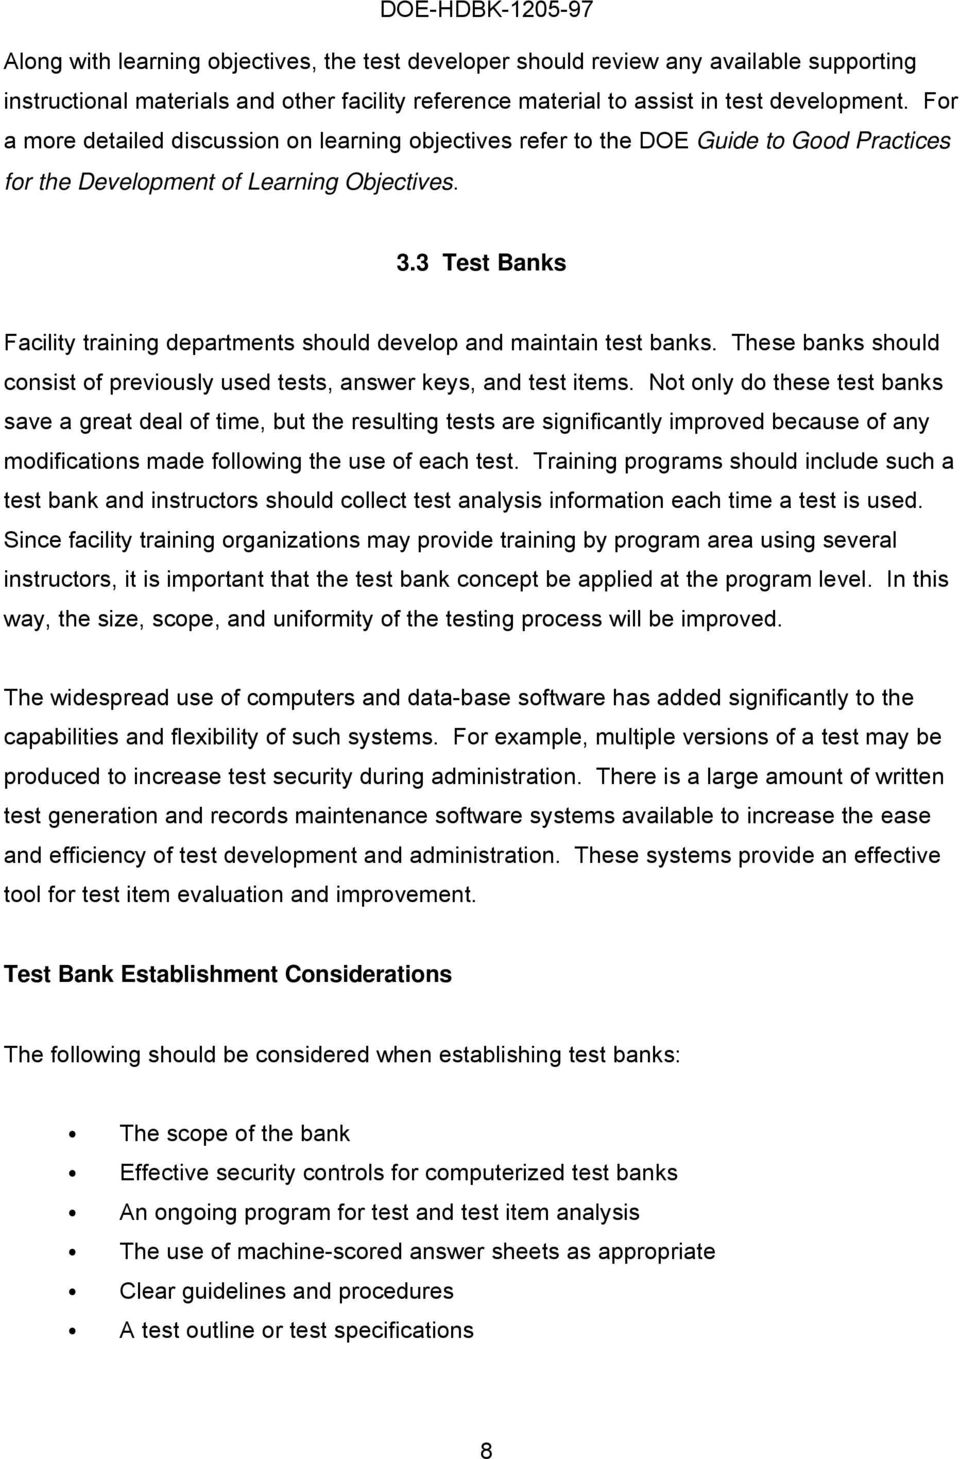 3 Test Banks Facility training departments should develop and maintain test banks. These banks should consist of previously used tests, answer keys, and test items.